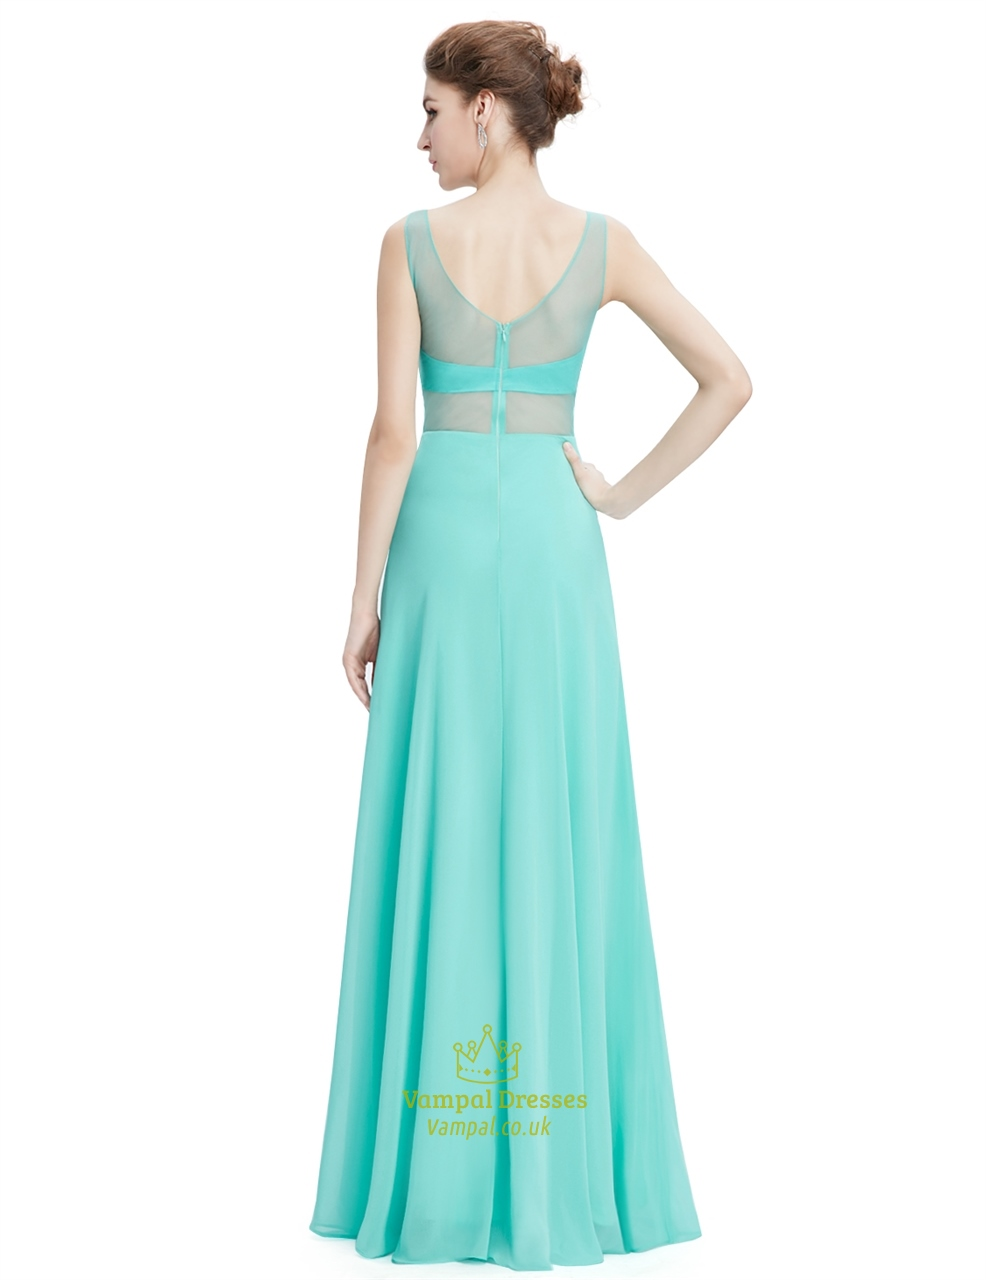 Mint Green Sleeveless Chiffon Prom Dress With Gold Accents   Vampal ...